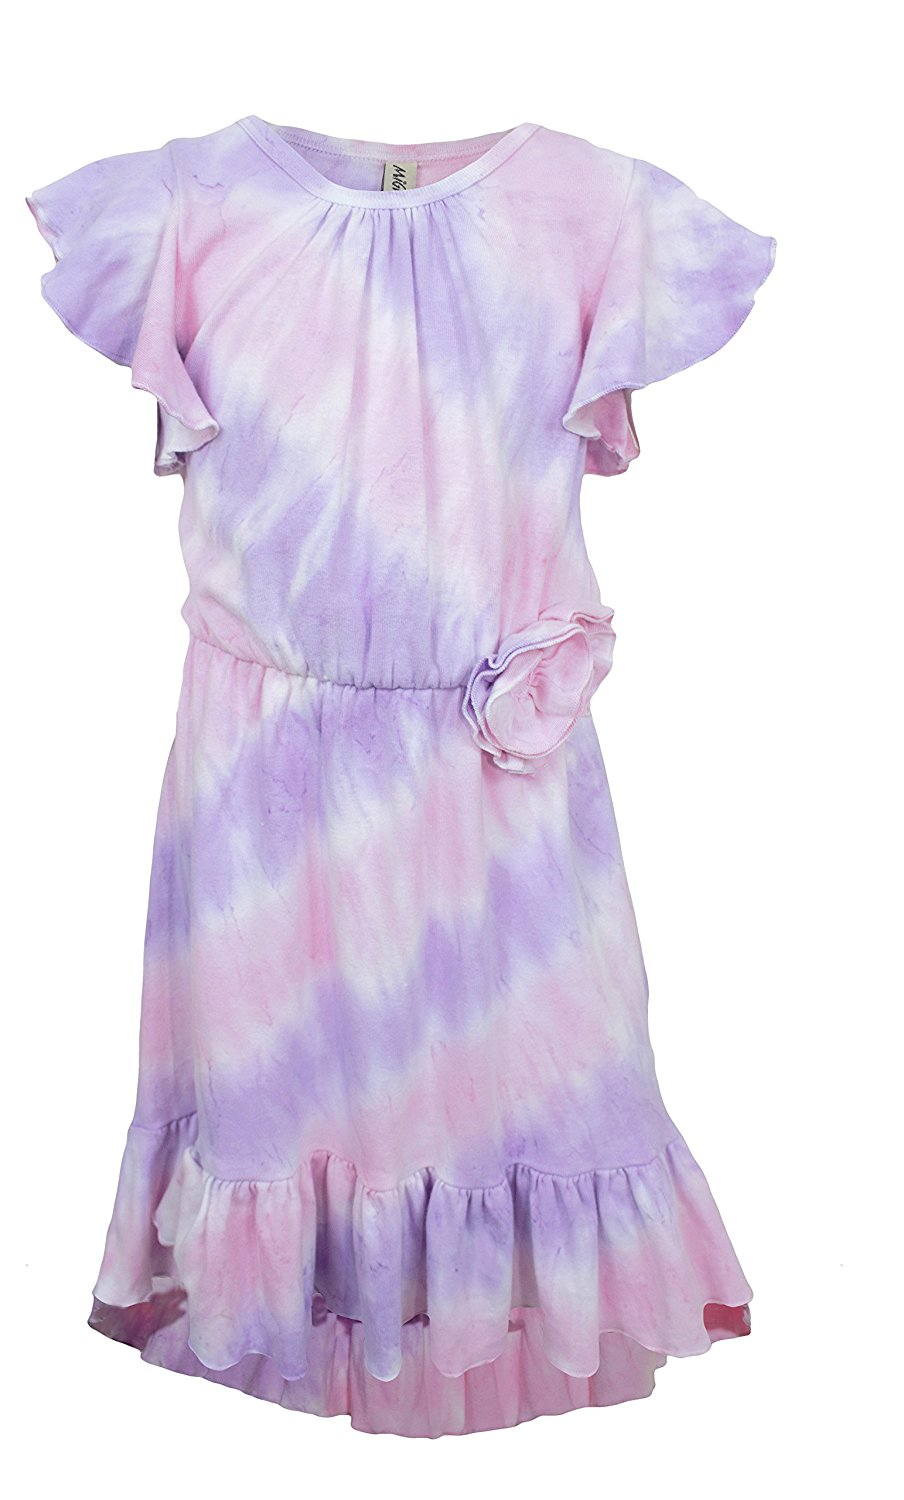 Mignone Girls High-Low Hem Tie Dye Dress